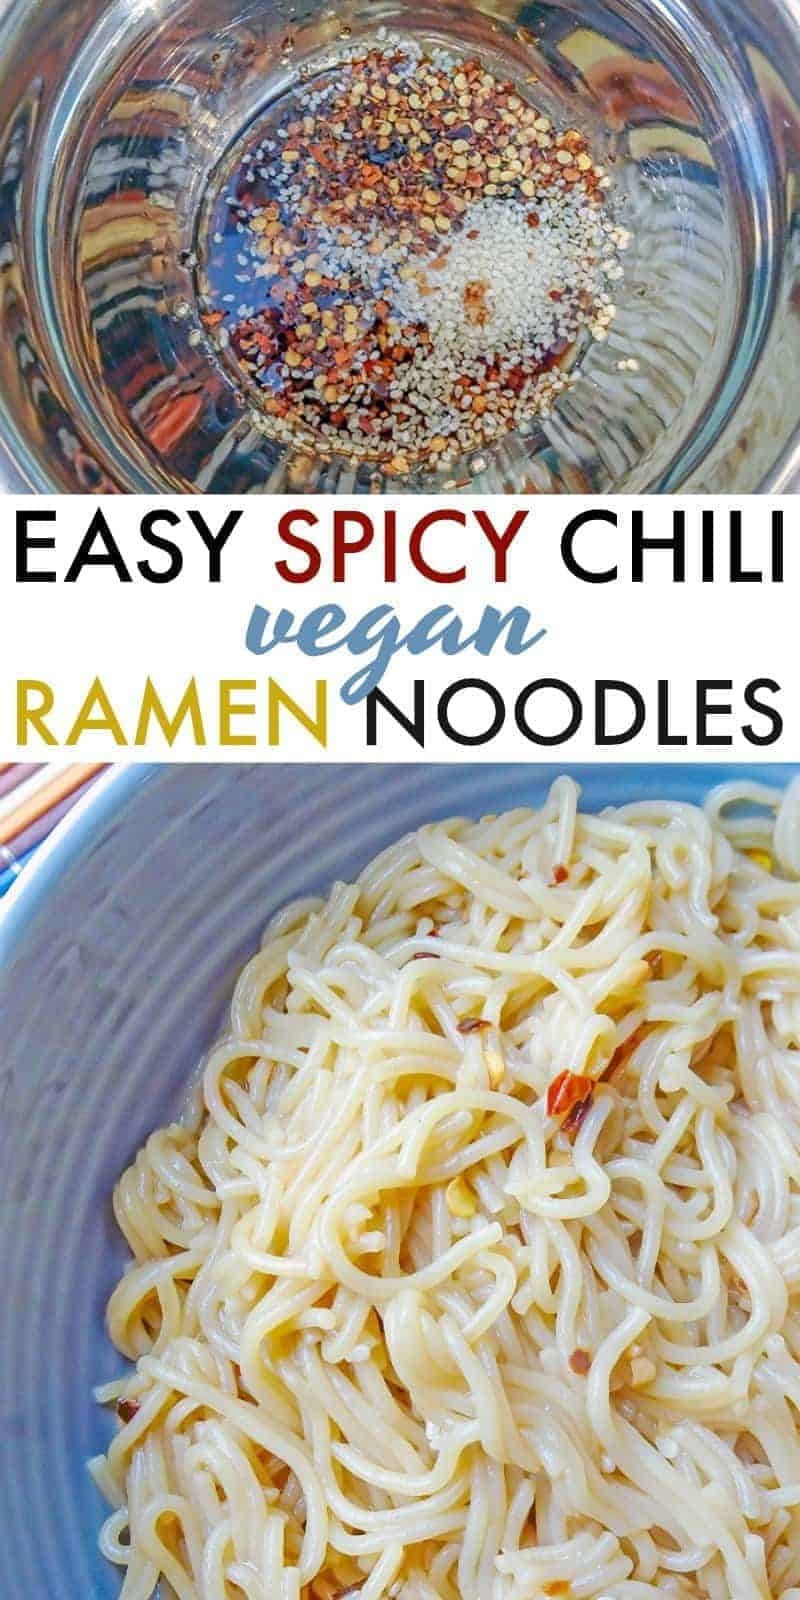 Everyone loves ramen! Make this quick and easy spicy chili vegan ramen at home with a few simple ingredients. It's delicious! #vegan #veganrecipes #veganfood #veganlife #noodles #easyrecipe #sidedish #quick